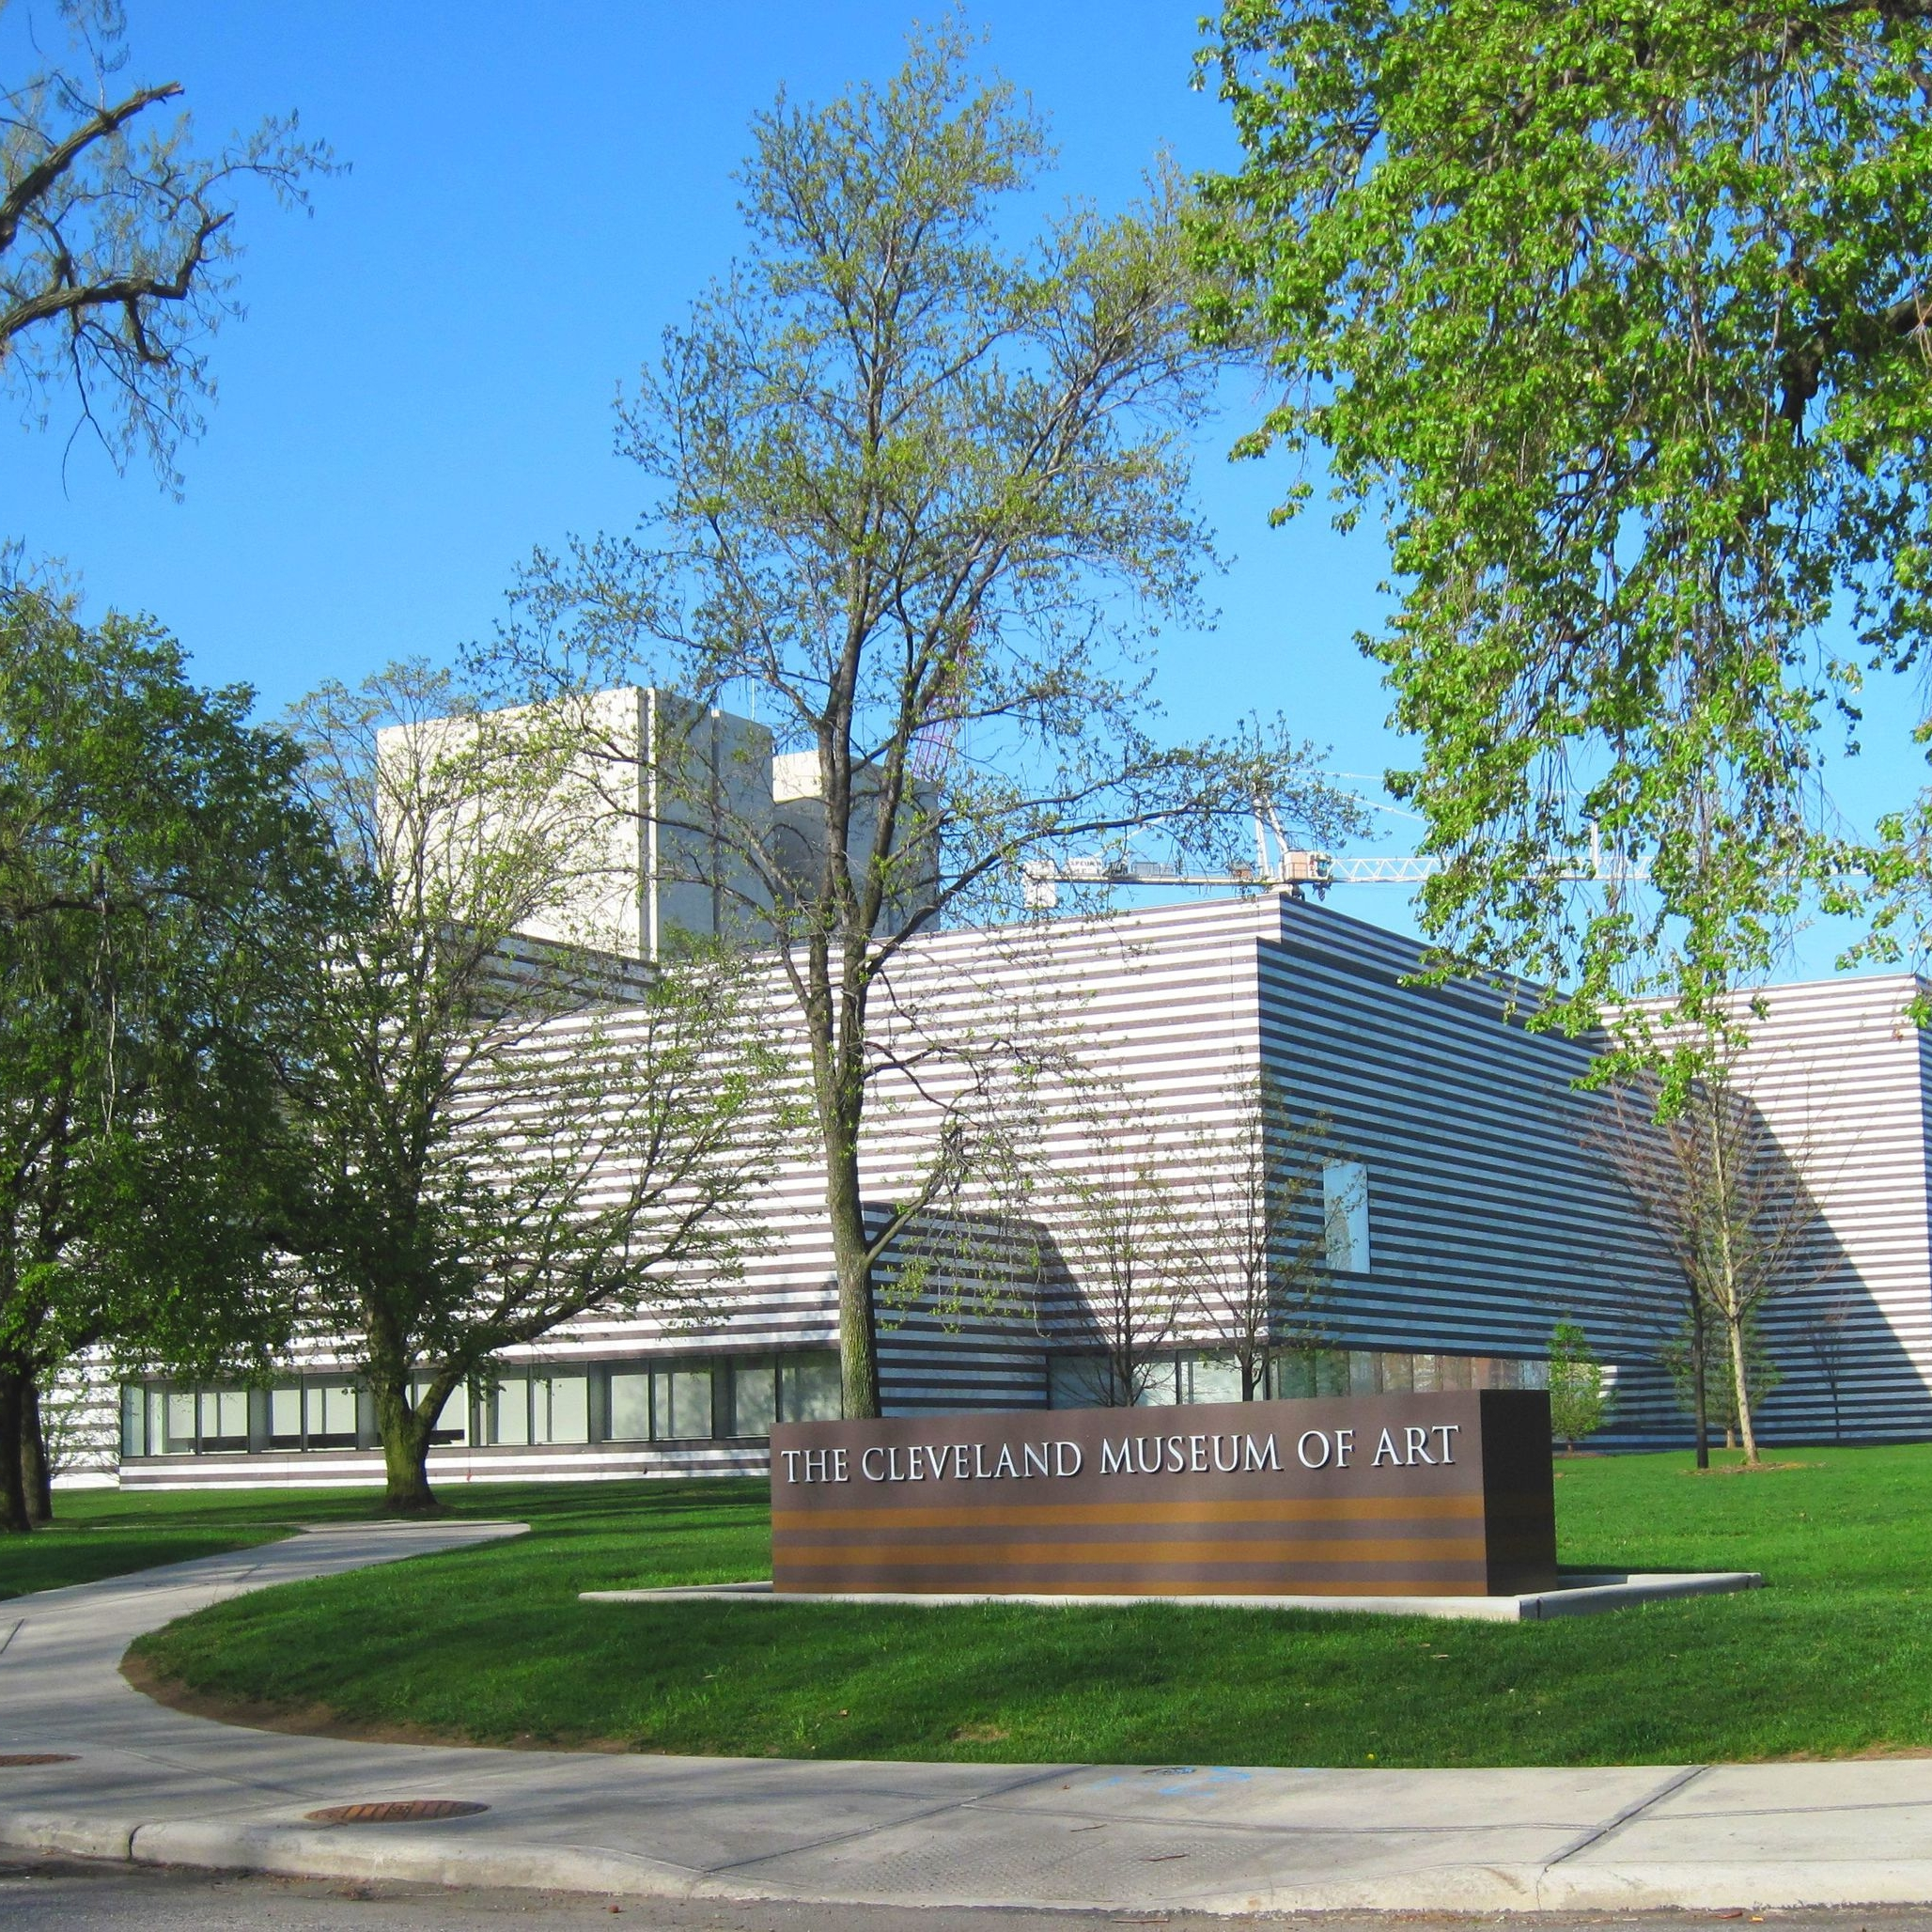 CLEVELAND MUSEUM OF ART RENOVATION AND EXPANSION